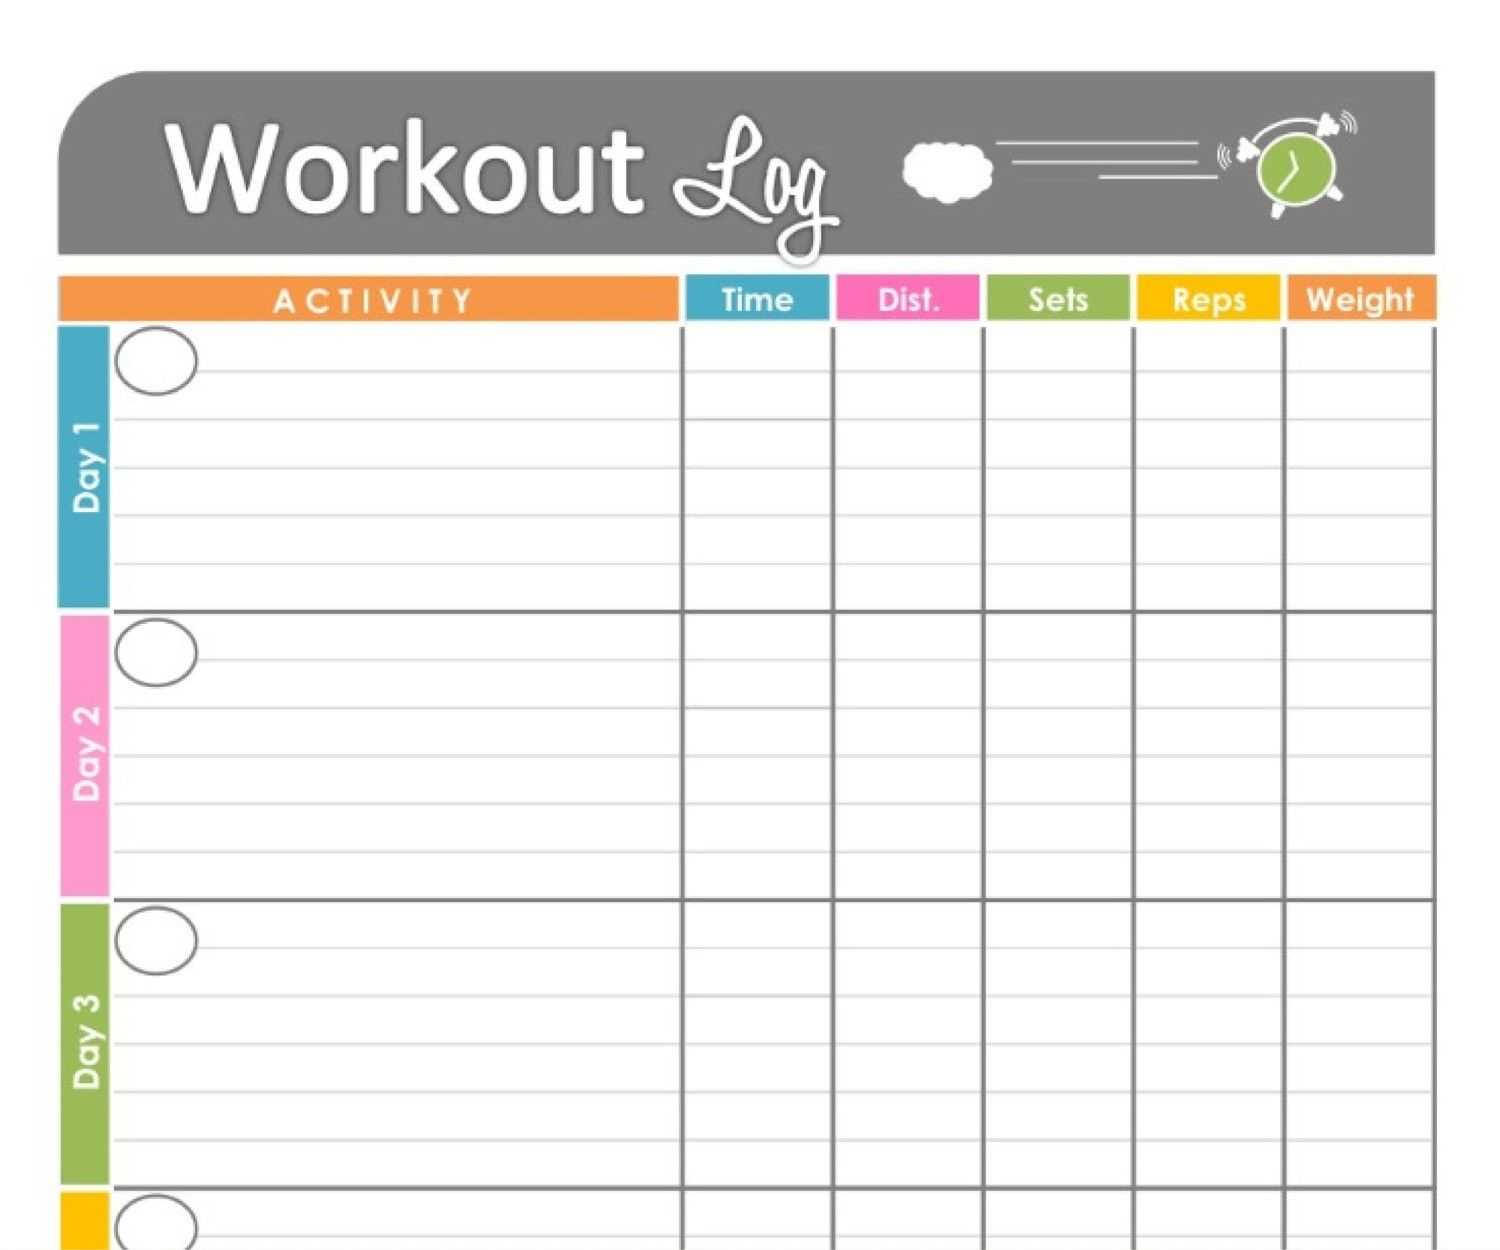 Pinkristy Winburn Revels On School Planners & Supplies With Regard To Blank Workout Schedule Template